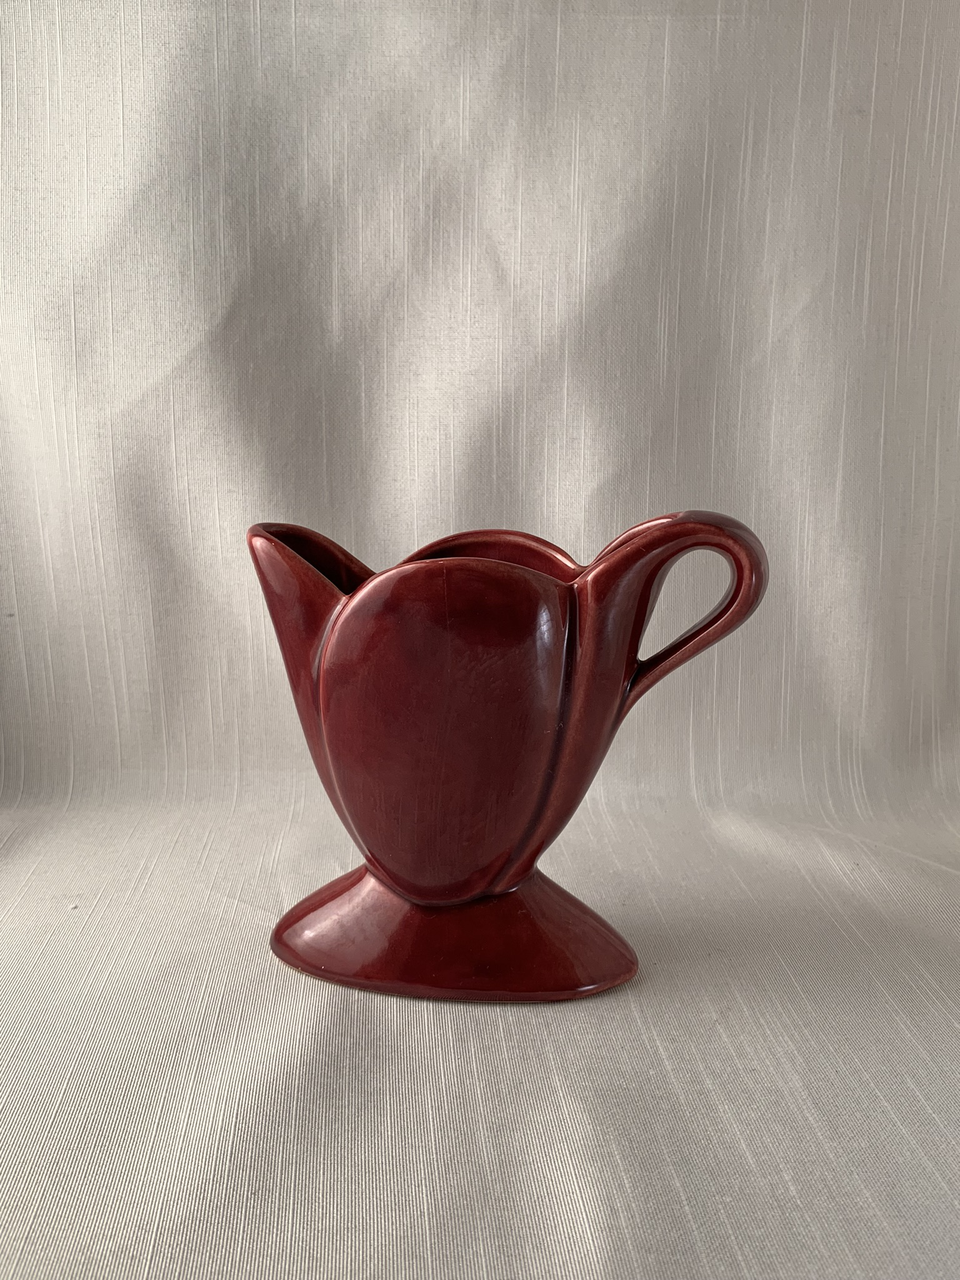 Cantinaware Pitcher Vintage Retro Ox Blood Perfect Mid Mod Eames Era Gift Boho